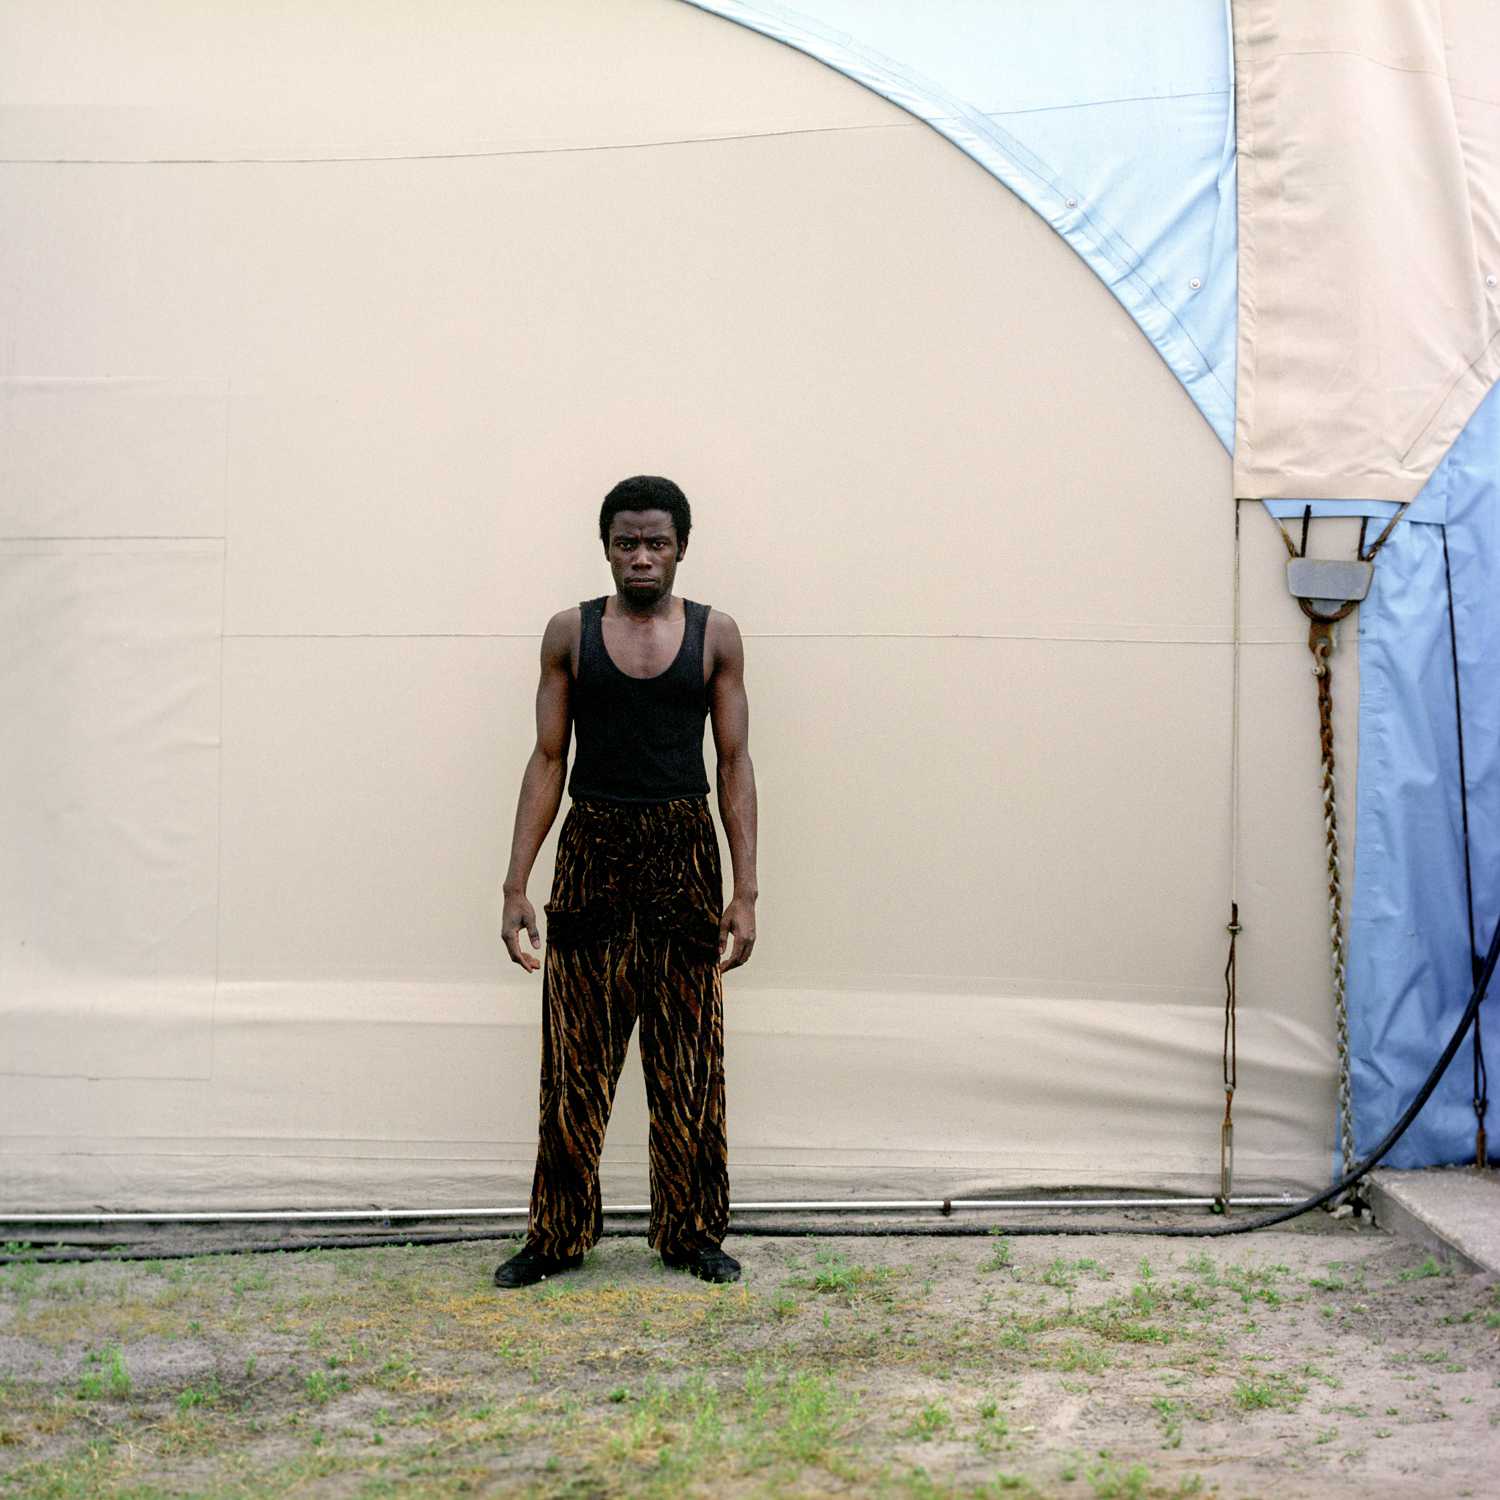 african american circus performer central florida fair